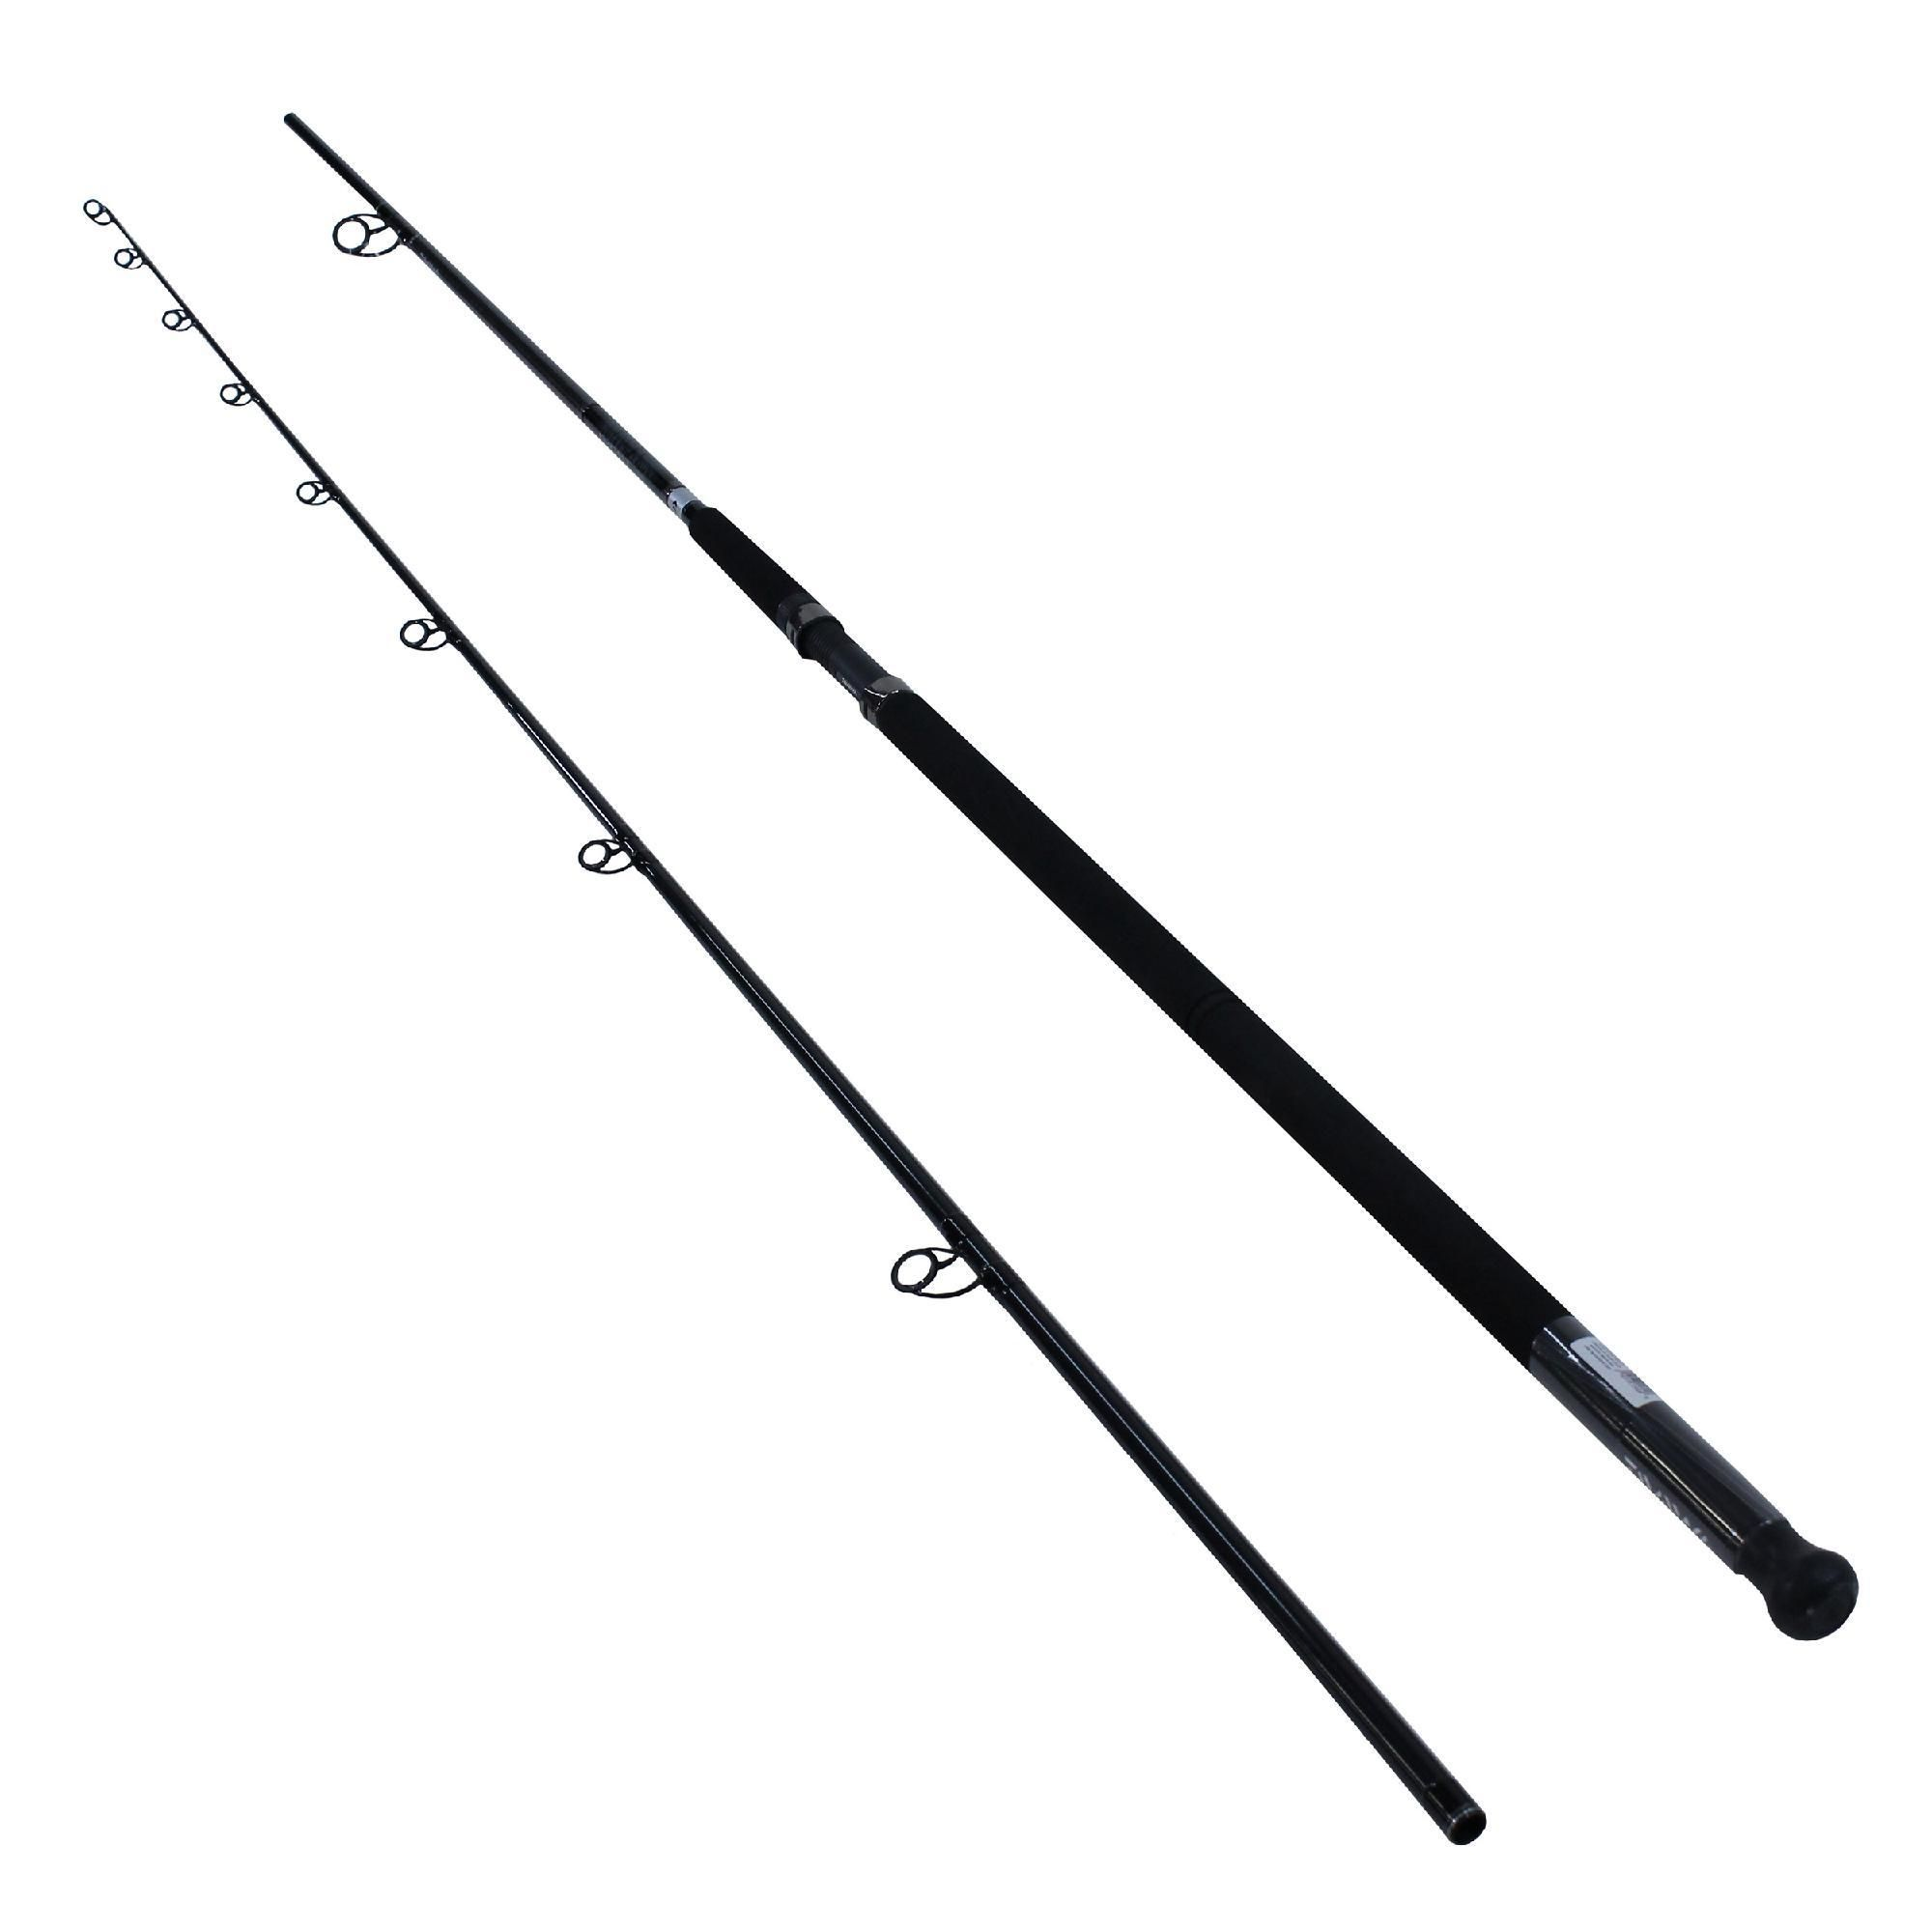 Emcast Surf Casting Rod 11 Length 2 Piece Rod 20 40 Line Rate 4 7 Oz Lure Rate Heavy Power Casting Rod It Cast Rod